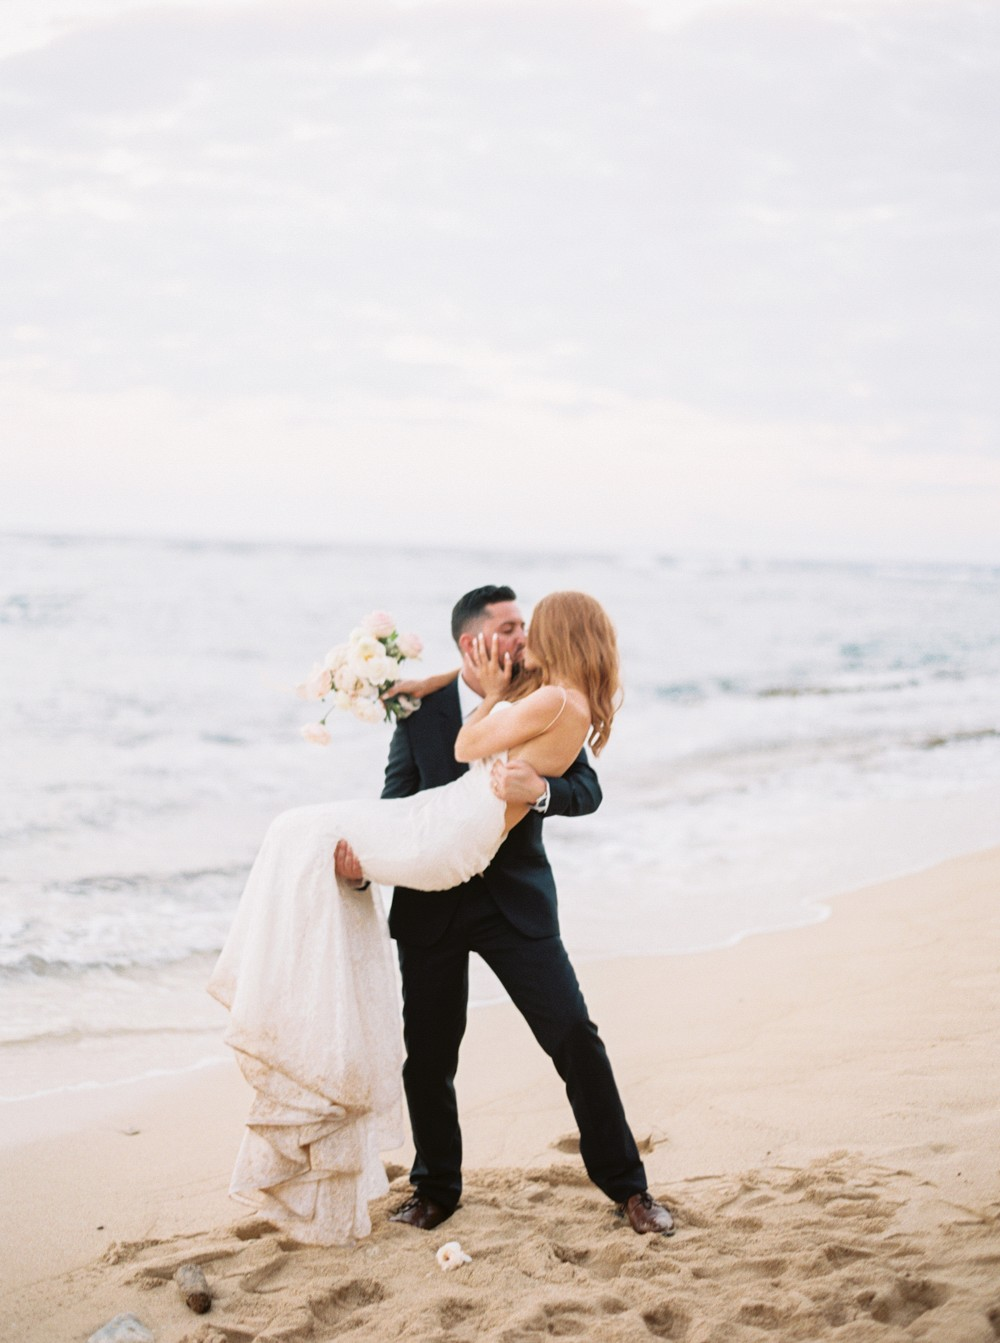 Oceanside Dominican Republic Wedding with Gold Details